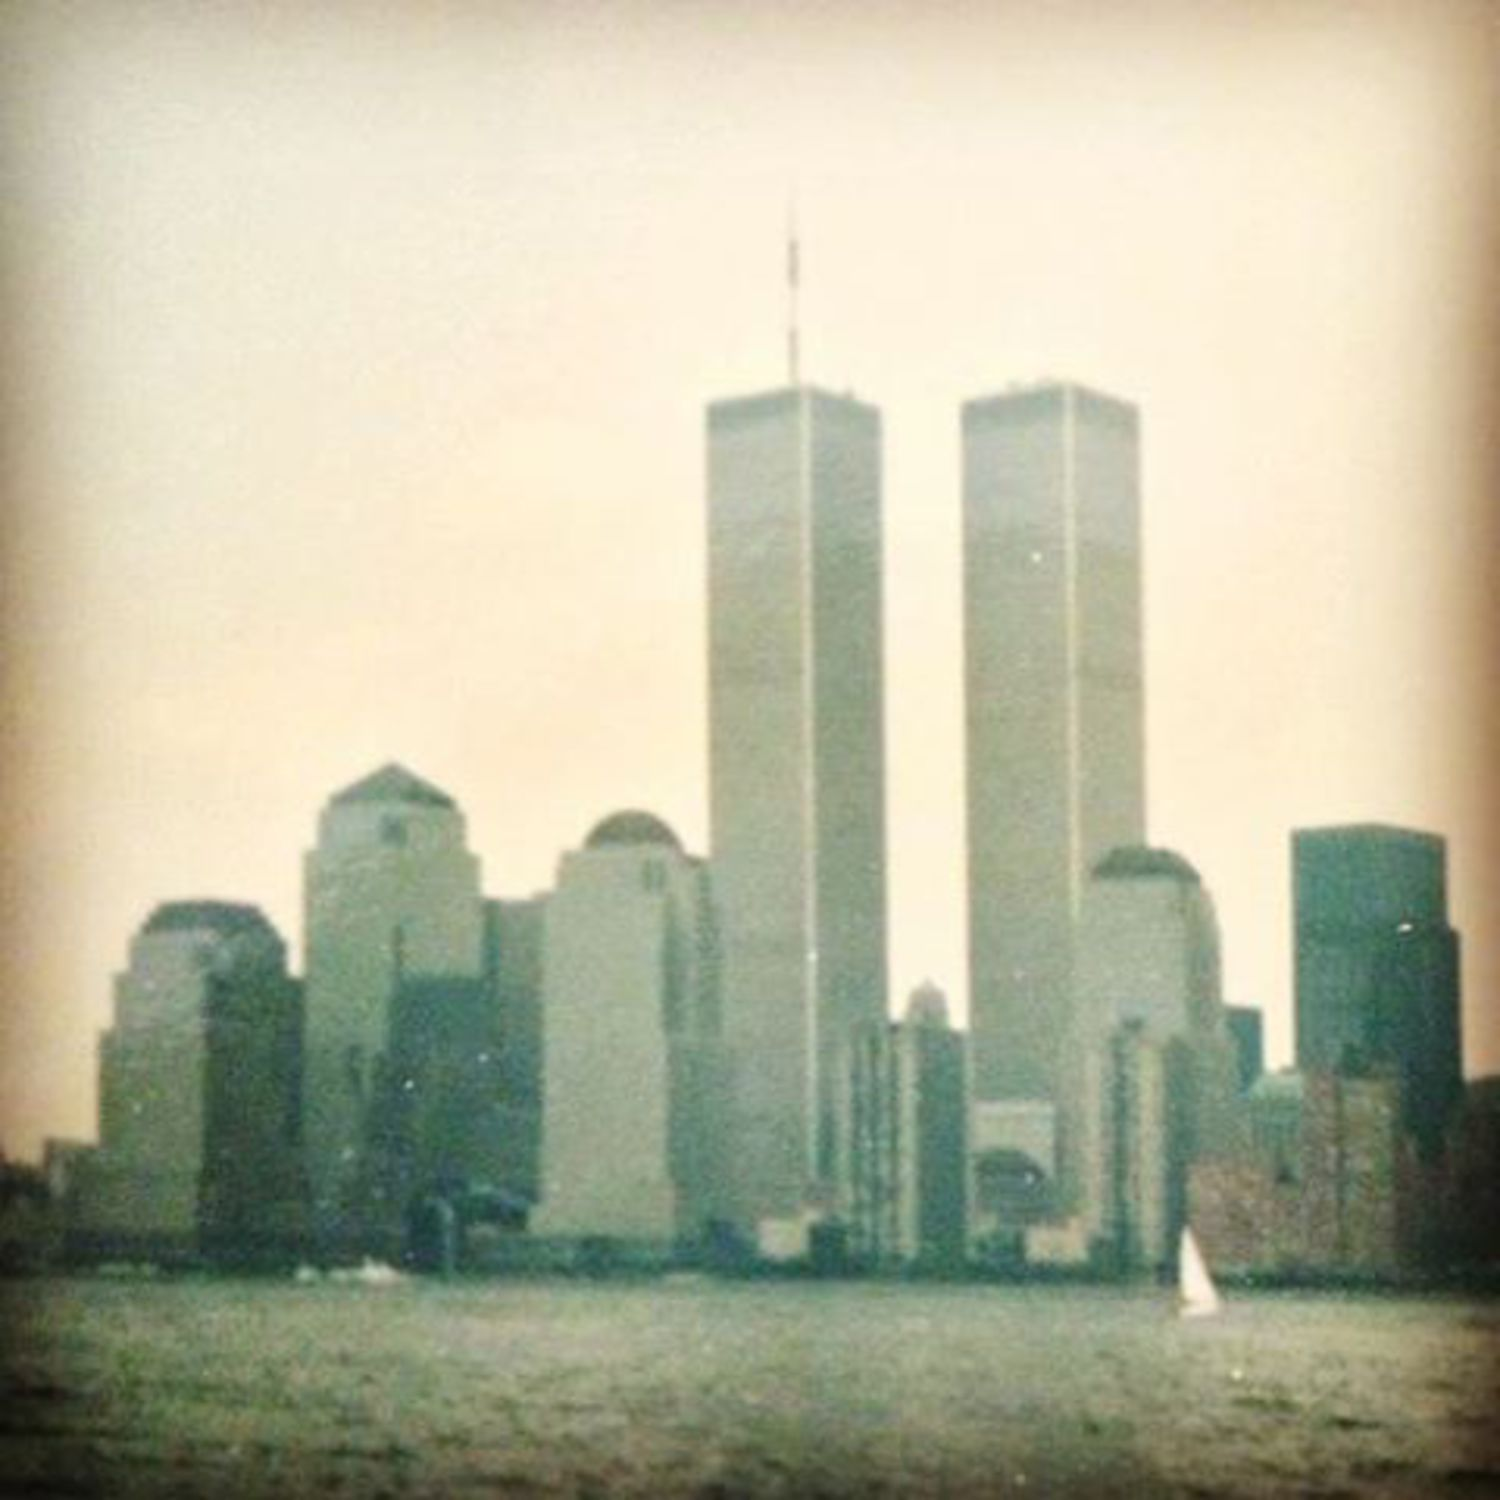 #neverforget #1989 #911memorial